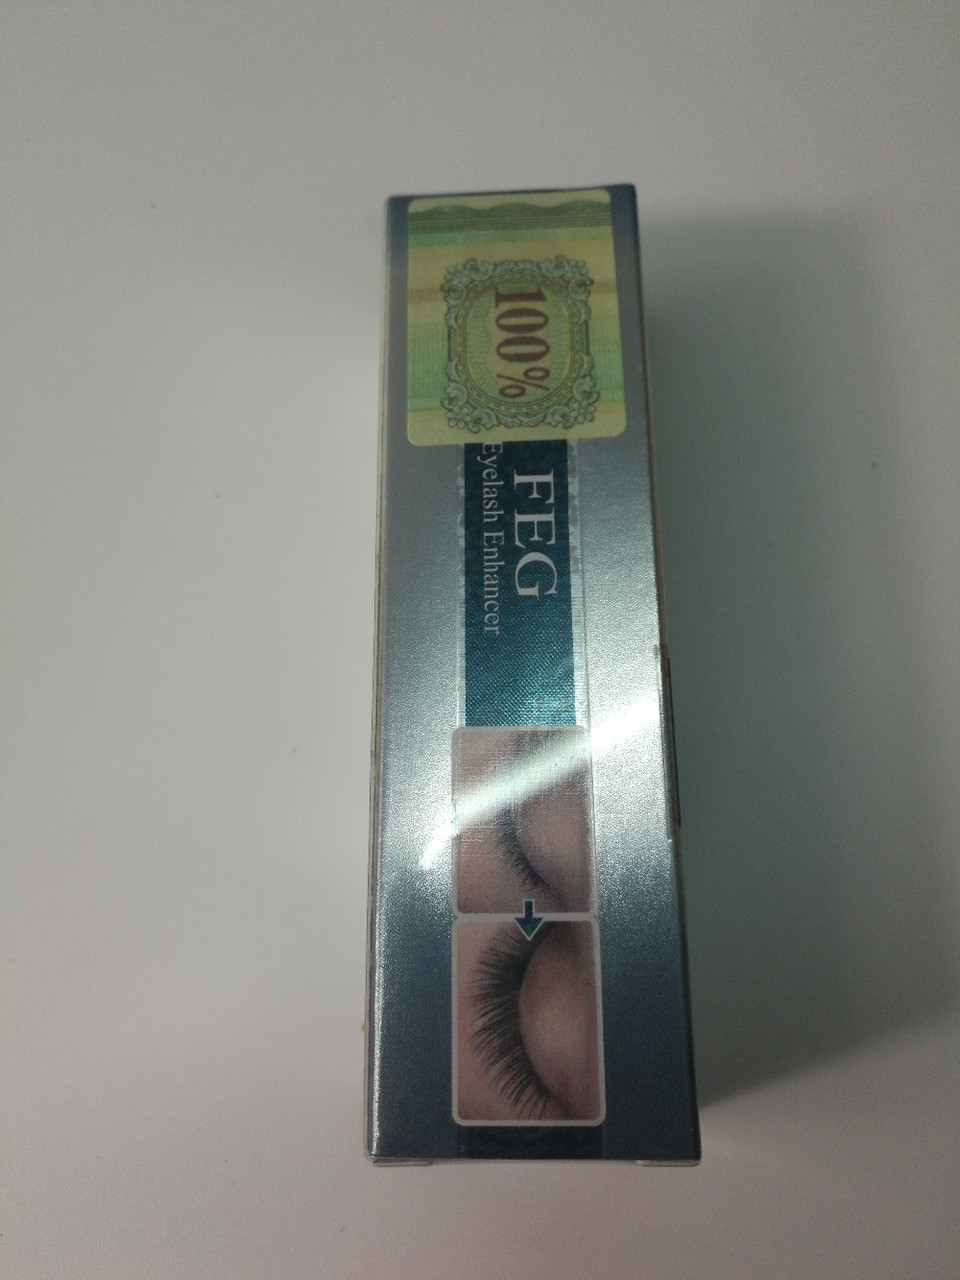 74d20a6807e ... 50pcs Original Feg Eyelash Enhancer Makeup Eyelash Growth Serum Natural  Herbal Medicine Eye Lash Serum Growth ...